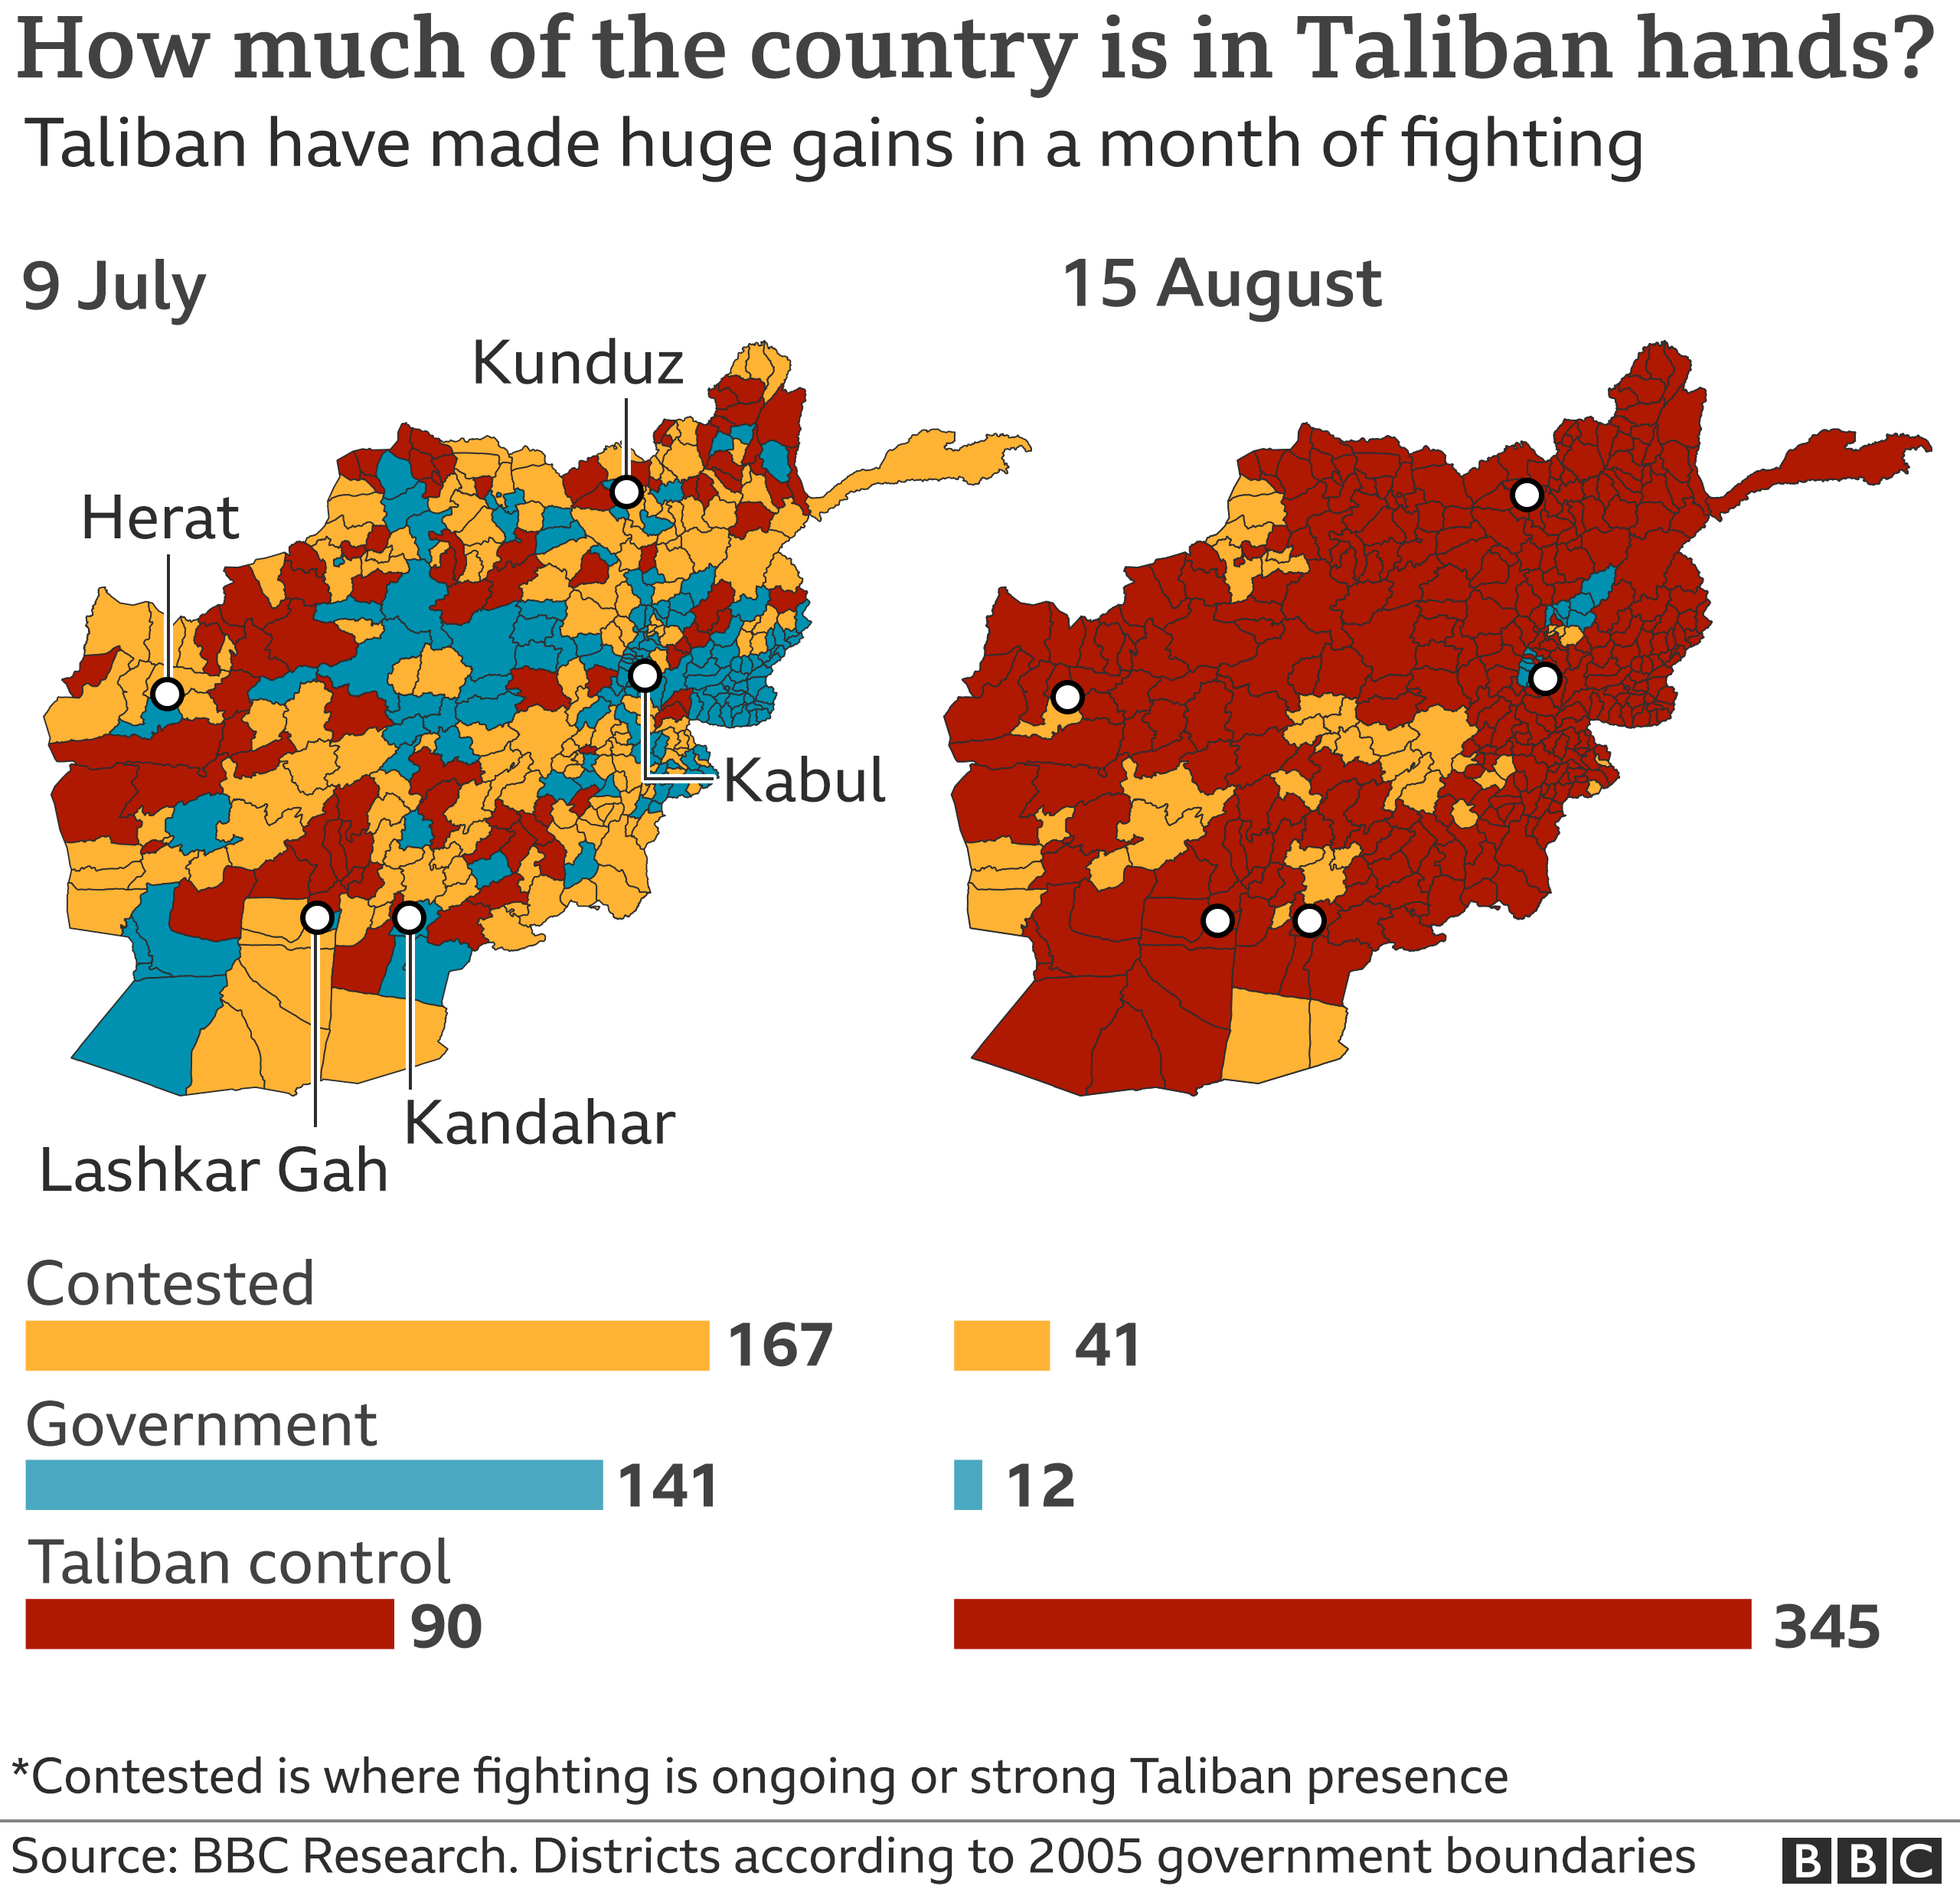 Map showing how much of the country is controlled by the Taliban compared to last month